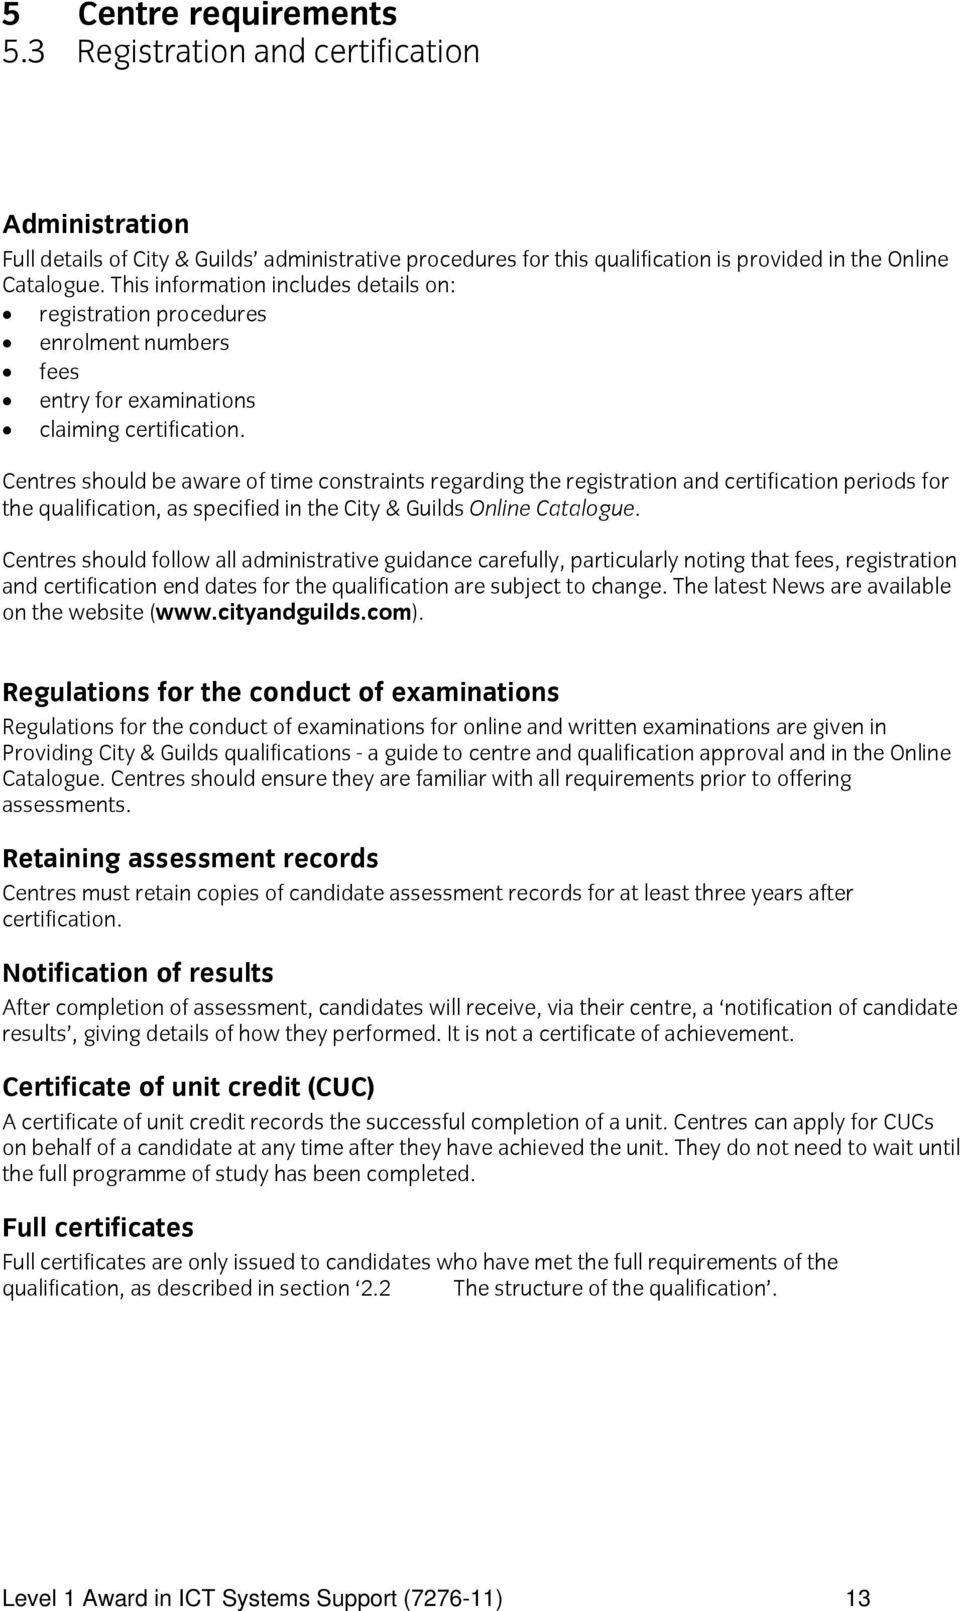 Centres should be aware of time constraints regarding the registration and certification periods for the qualification, as specified in the City & Guilds Online Catalogue.